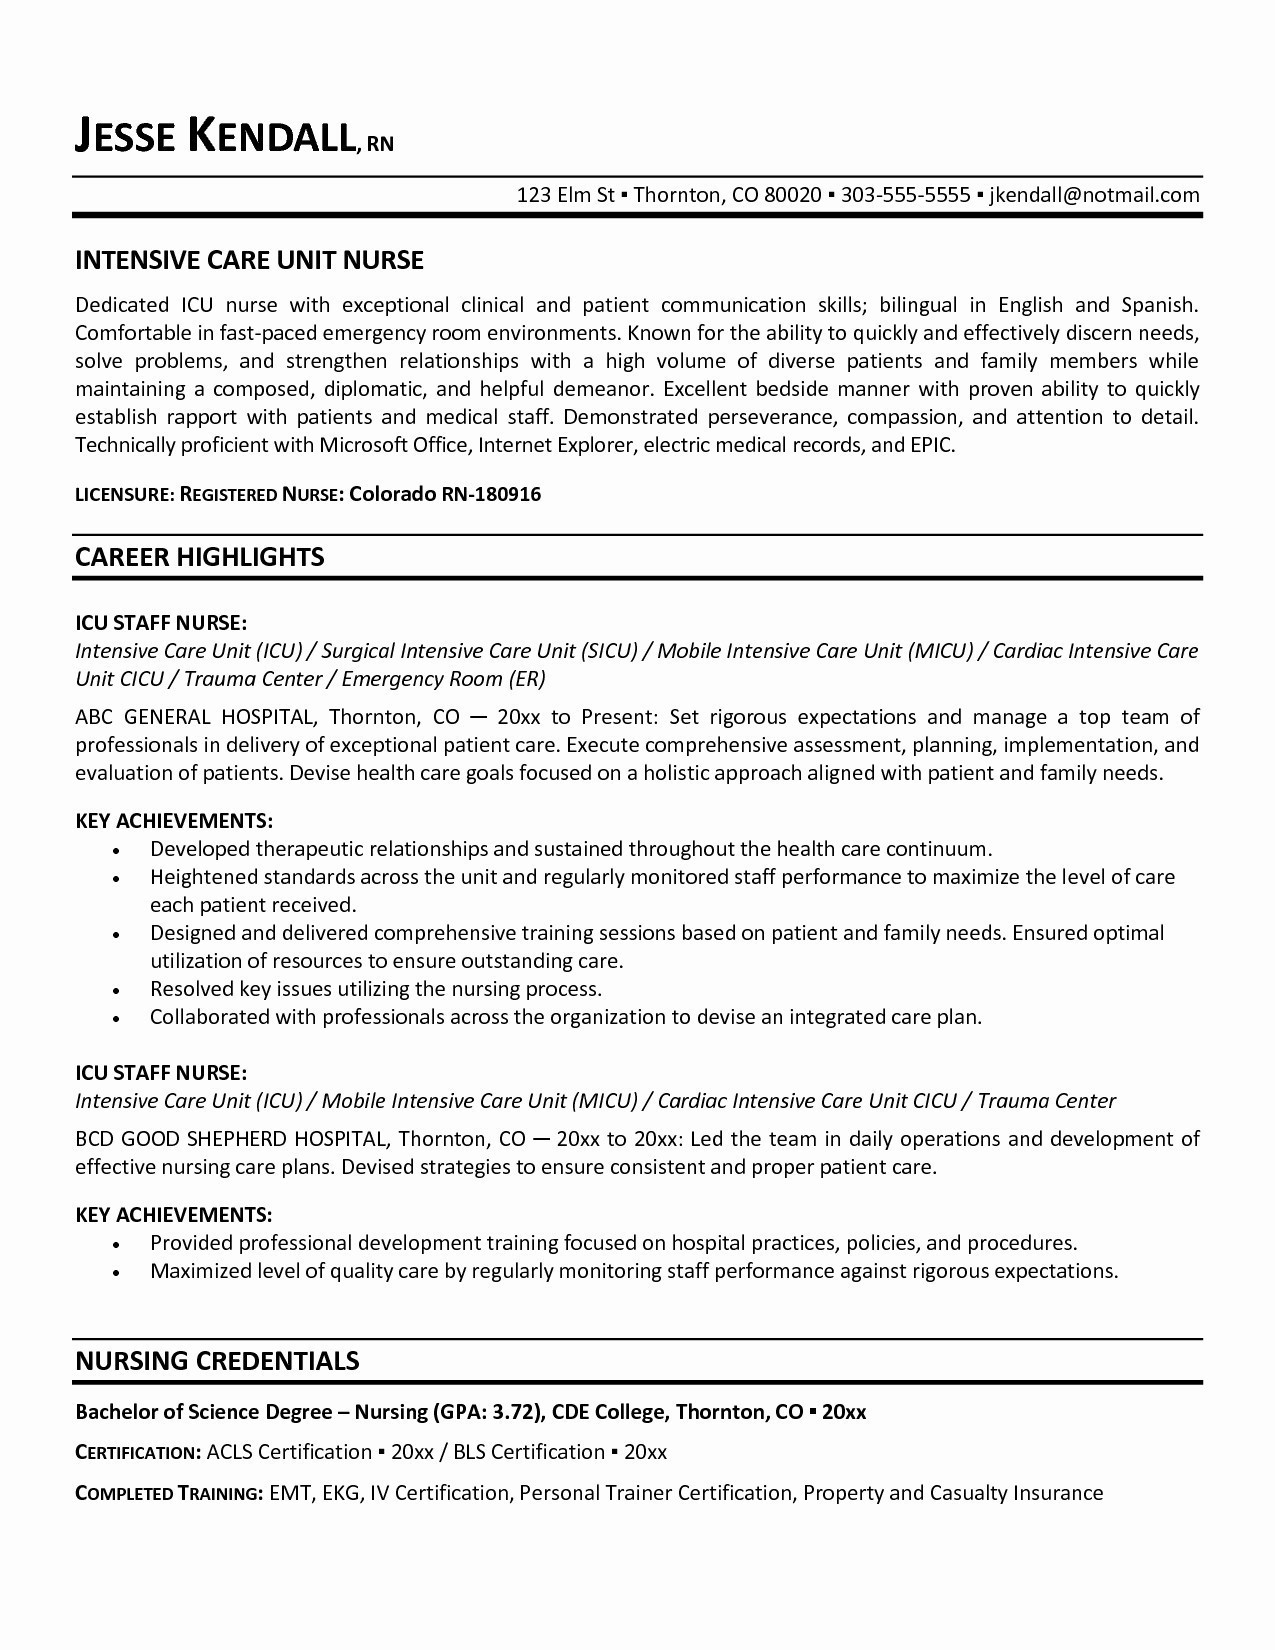 swim instructor resume example-Swim Instructor Resume 17 Swim Instructor Resume 15-b